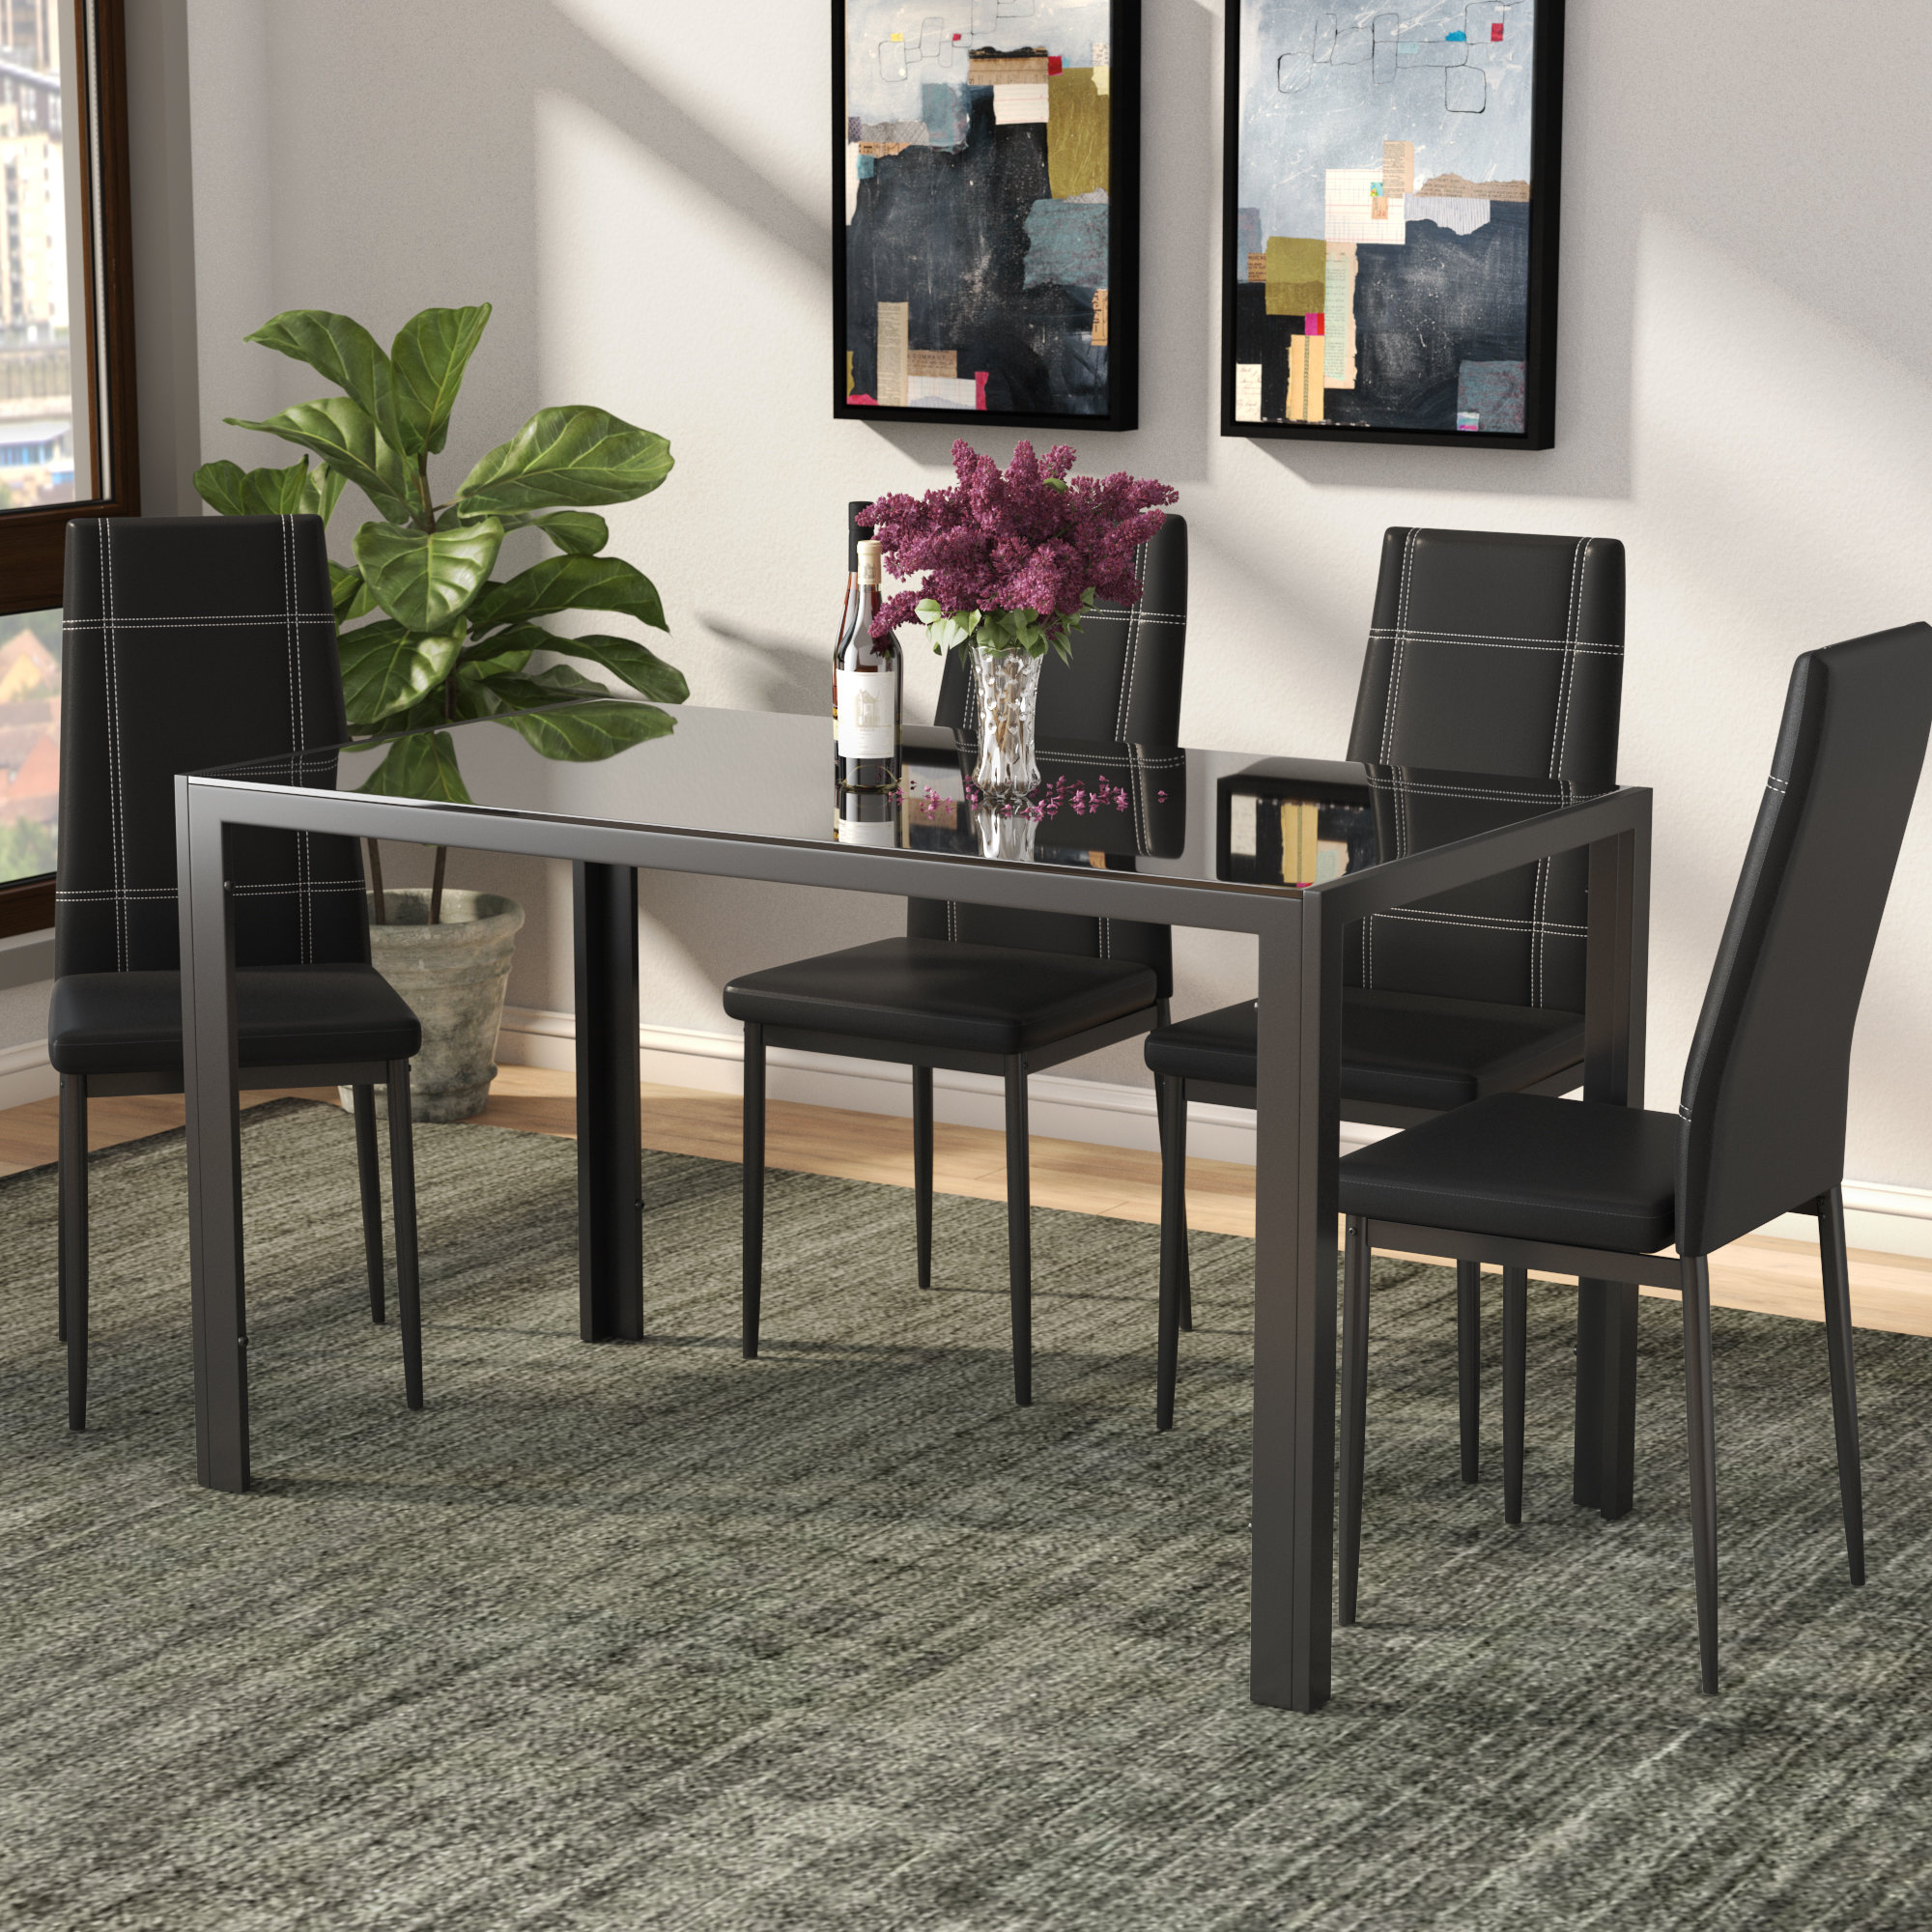 Wayfair Within Most Recently Released Springfield 3 Piece Dining Sets (#17 of 20)